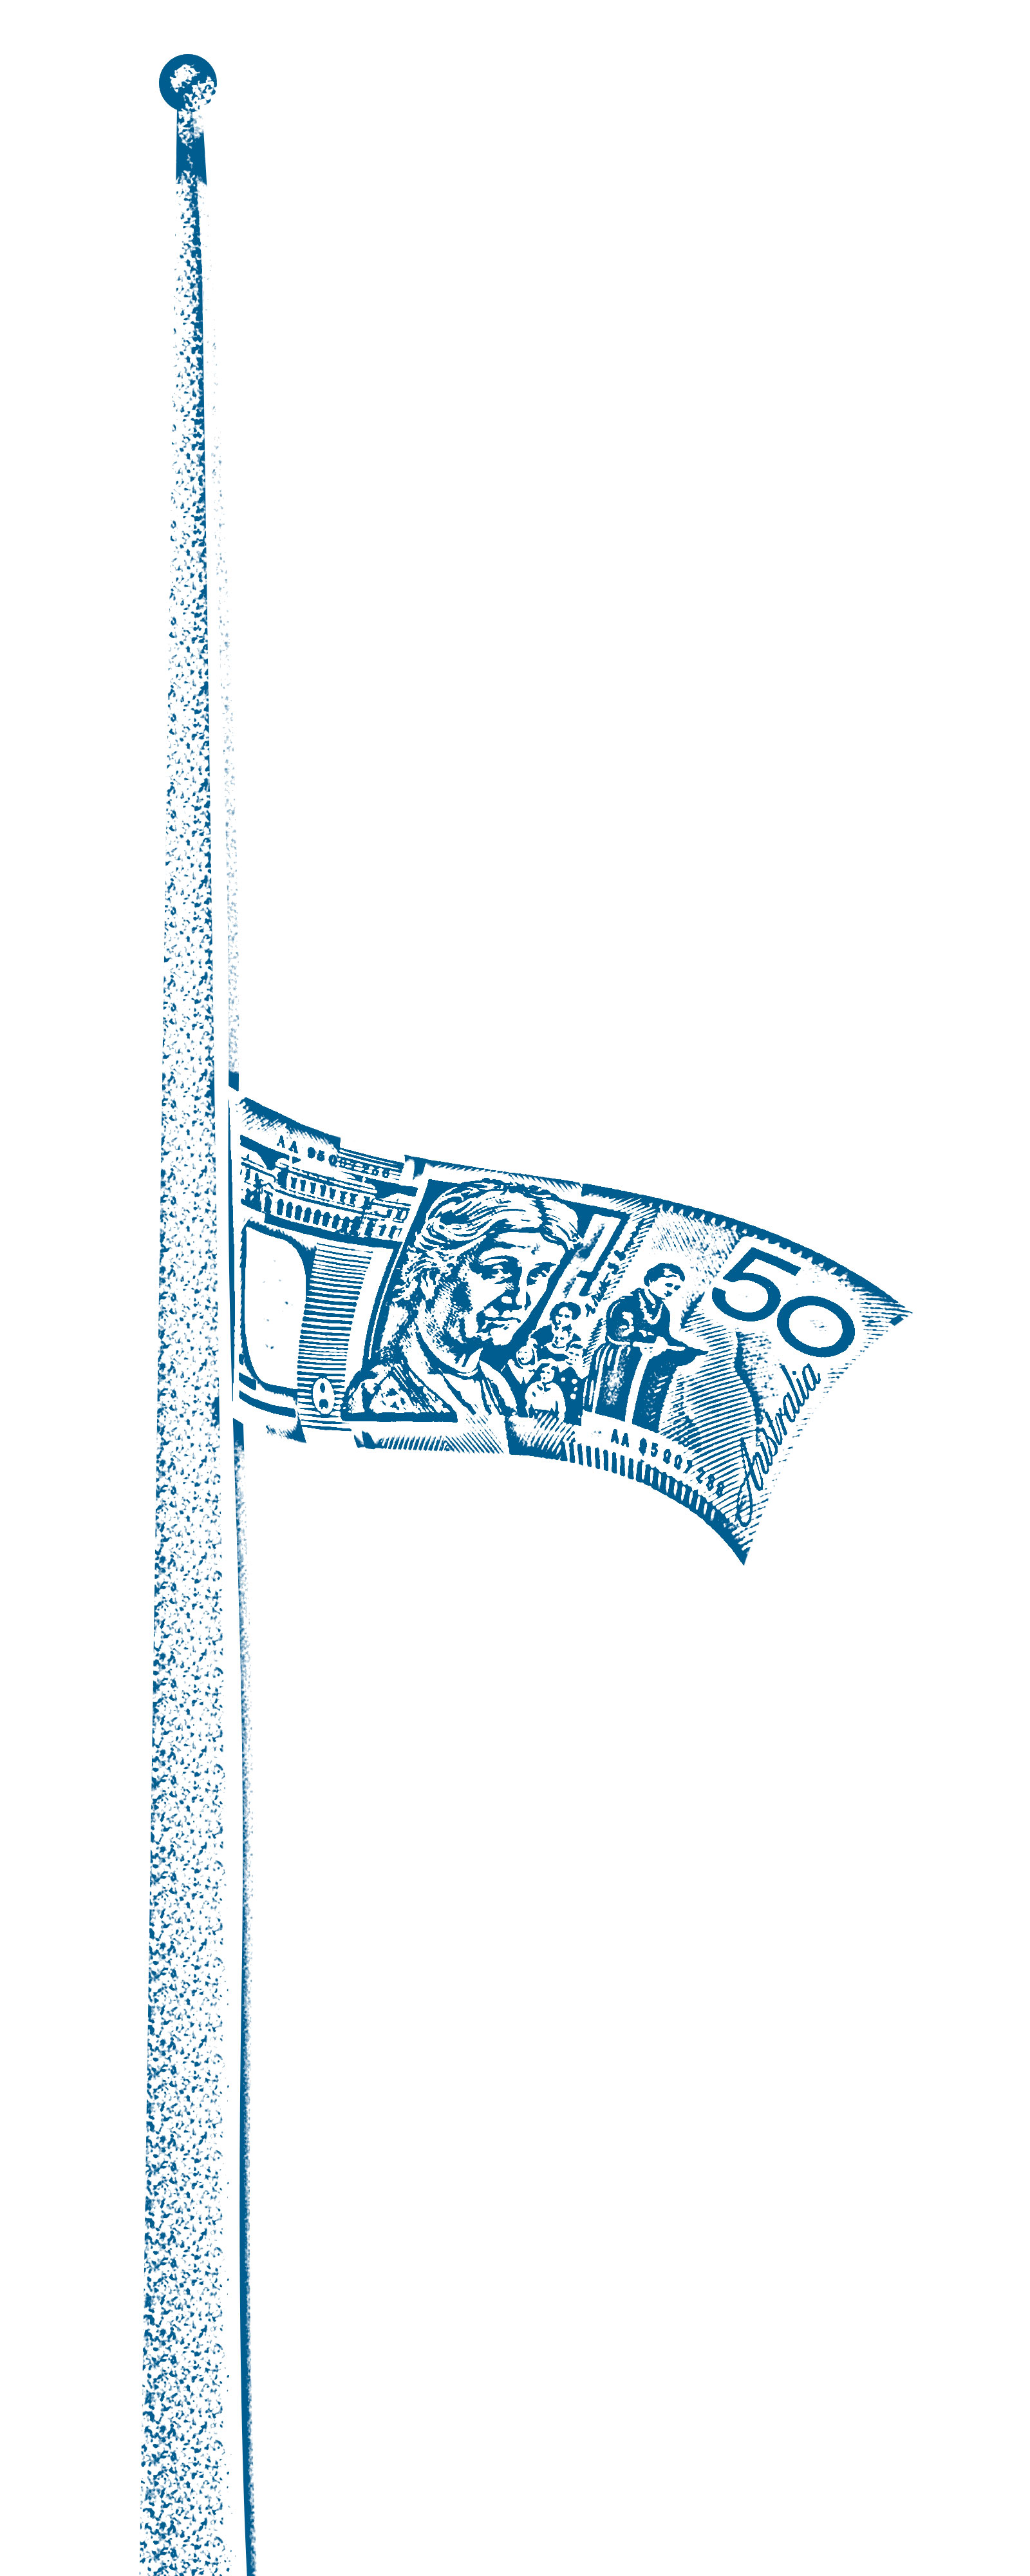 Illustration of a flagpole with an Australian fifty dollar note flying at half-mast